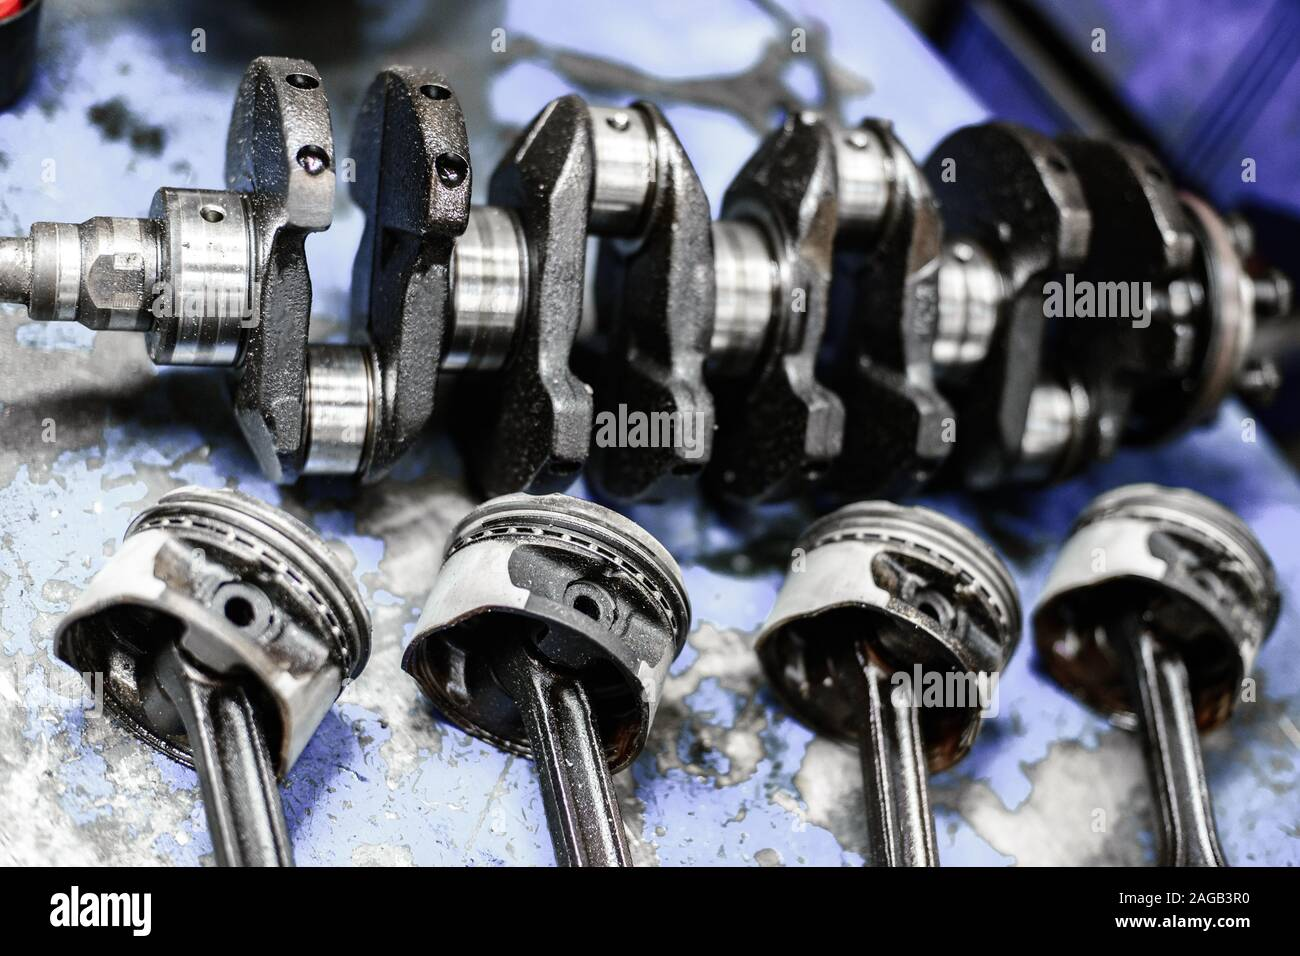 crankshaft and pistons with connecting rods of an internal combustion engine on a table Stock Photo